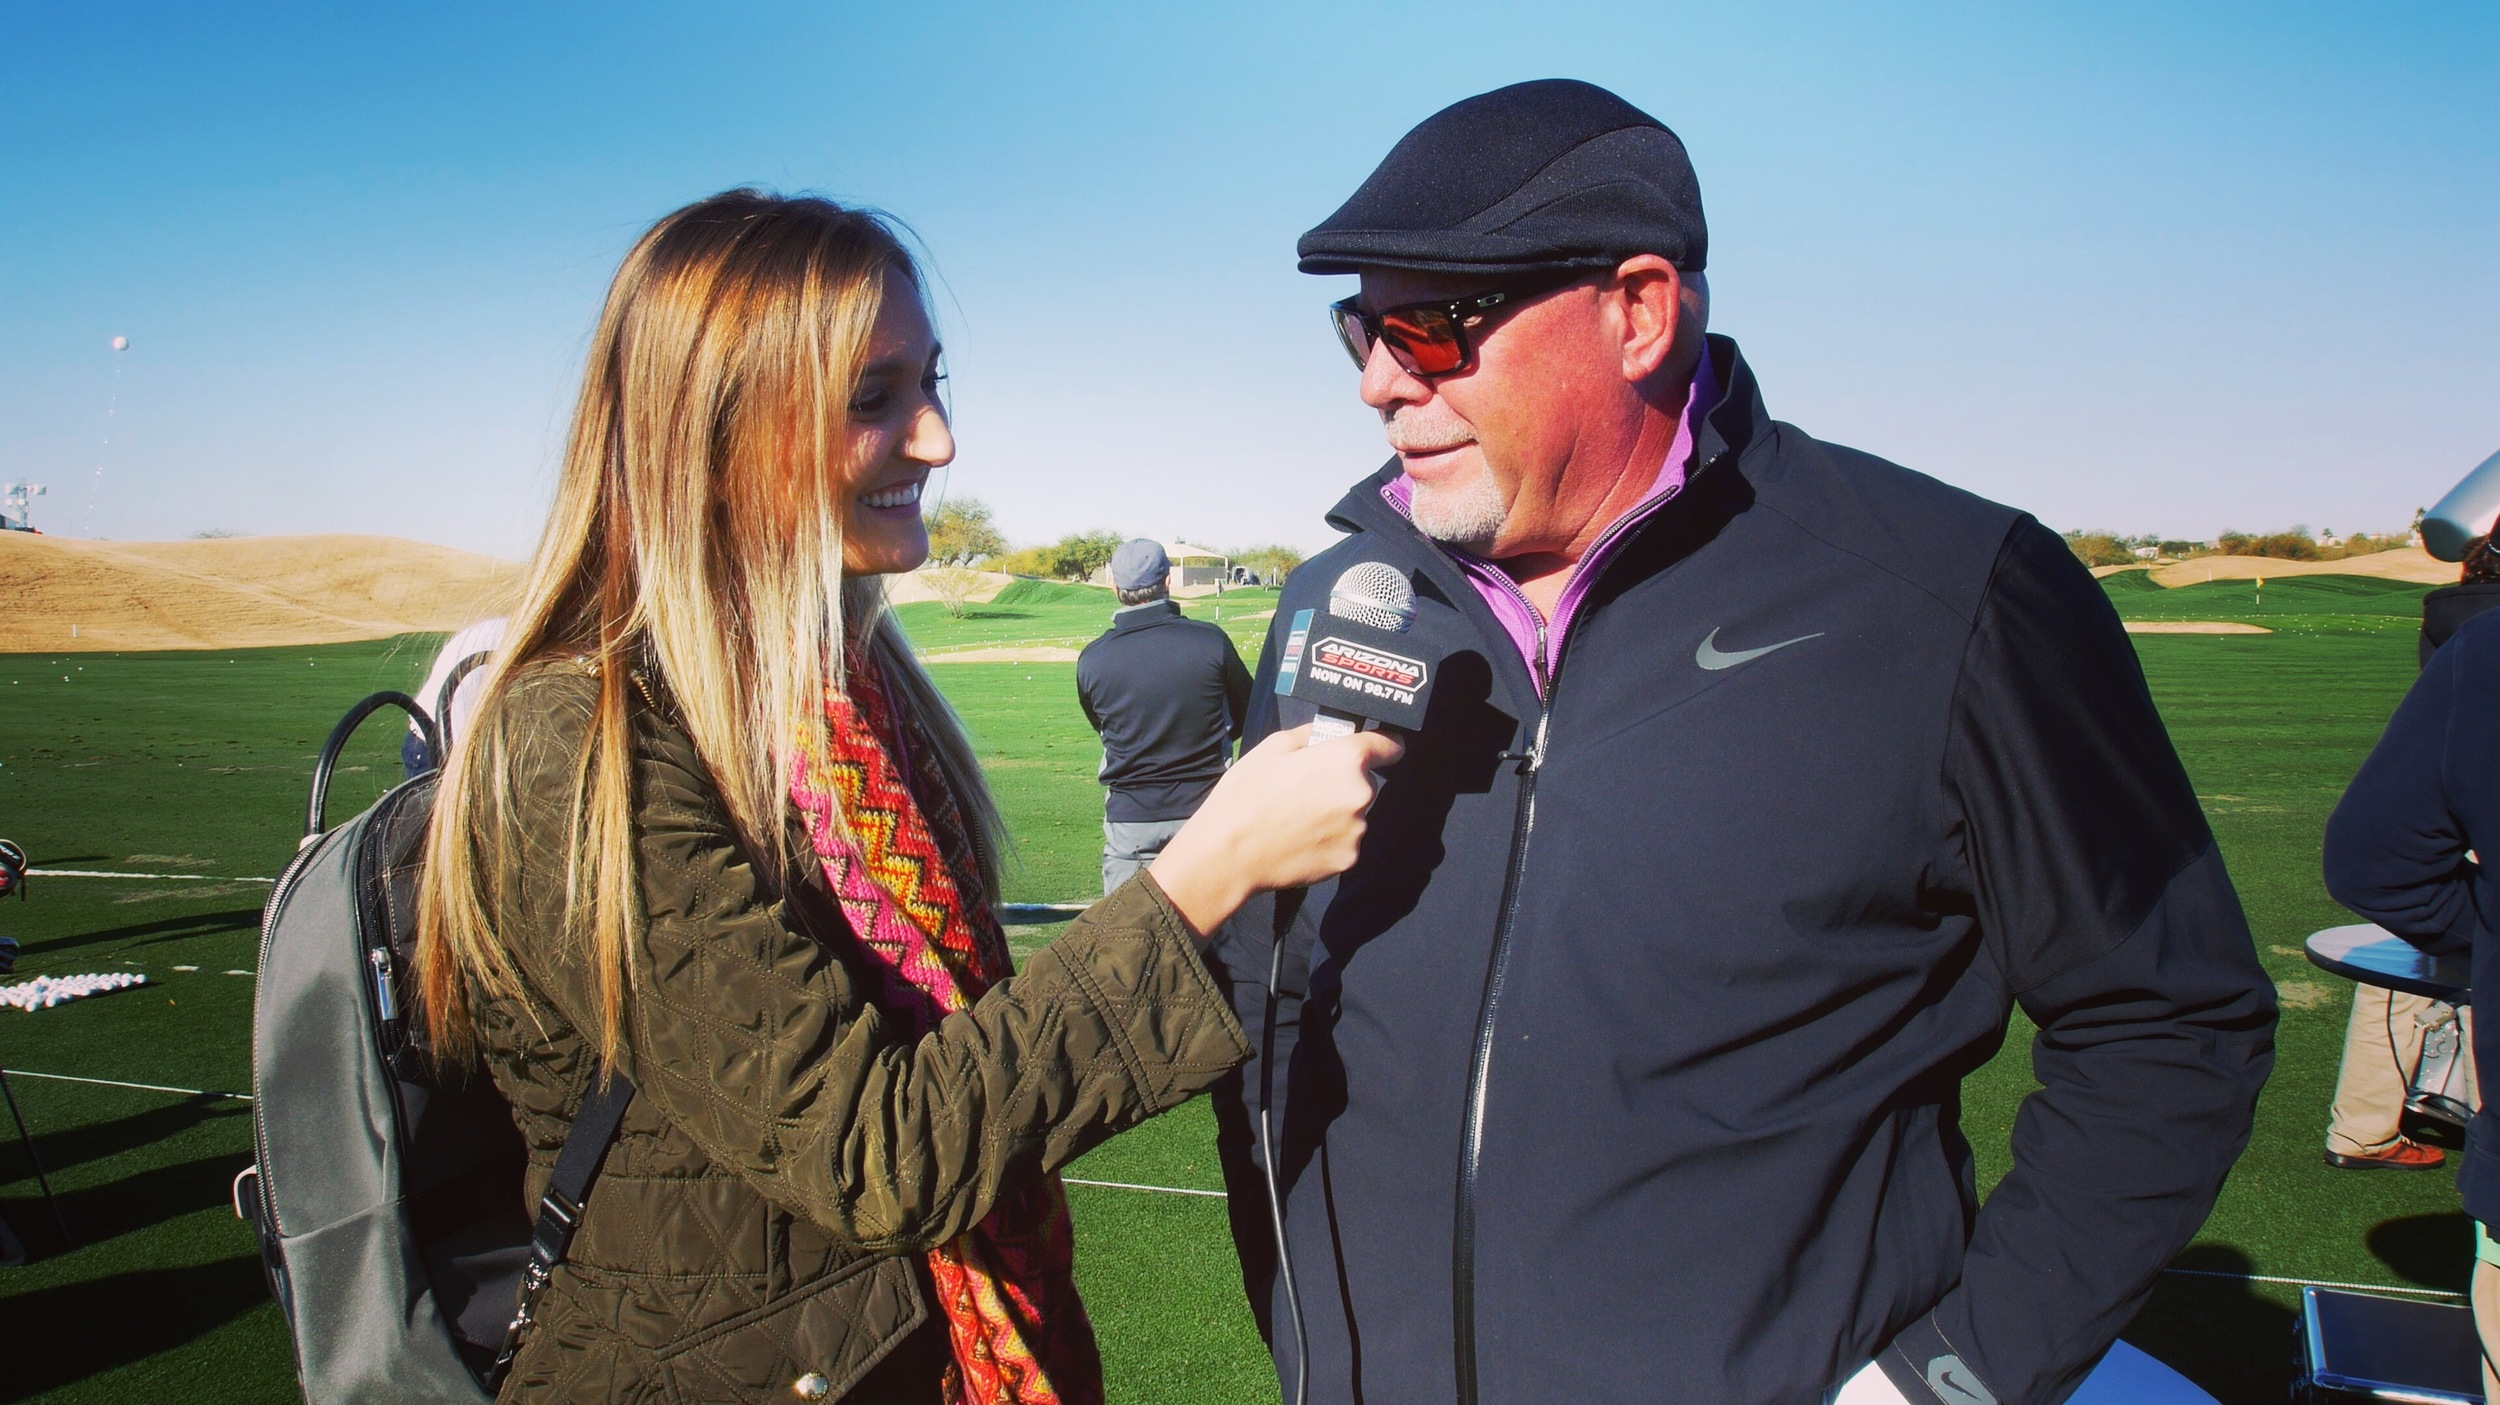 Dimakos interviewing Arizona Cardinals Head Coach Bruce Arians.